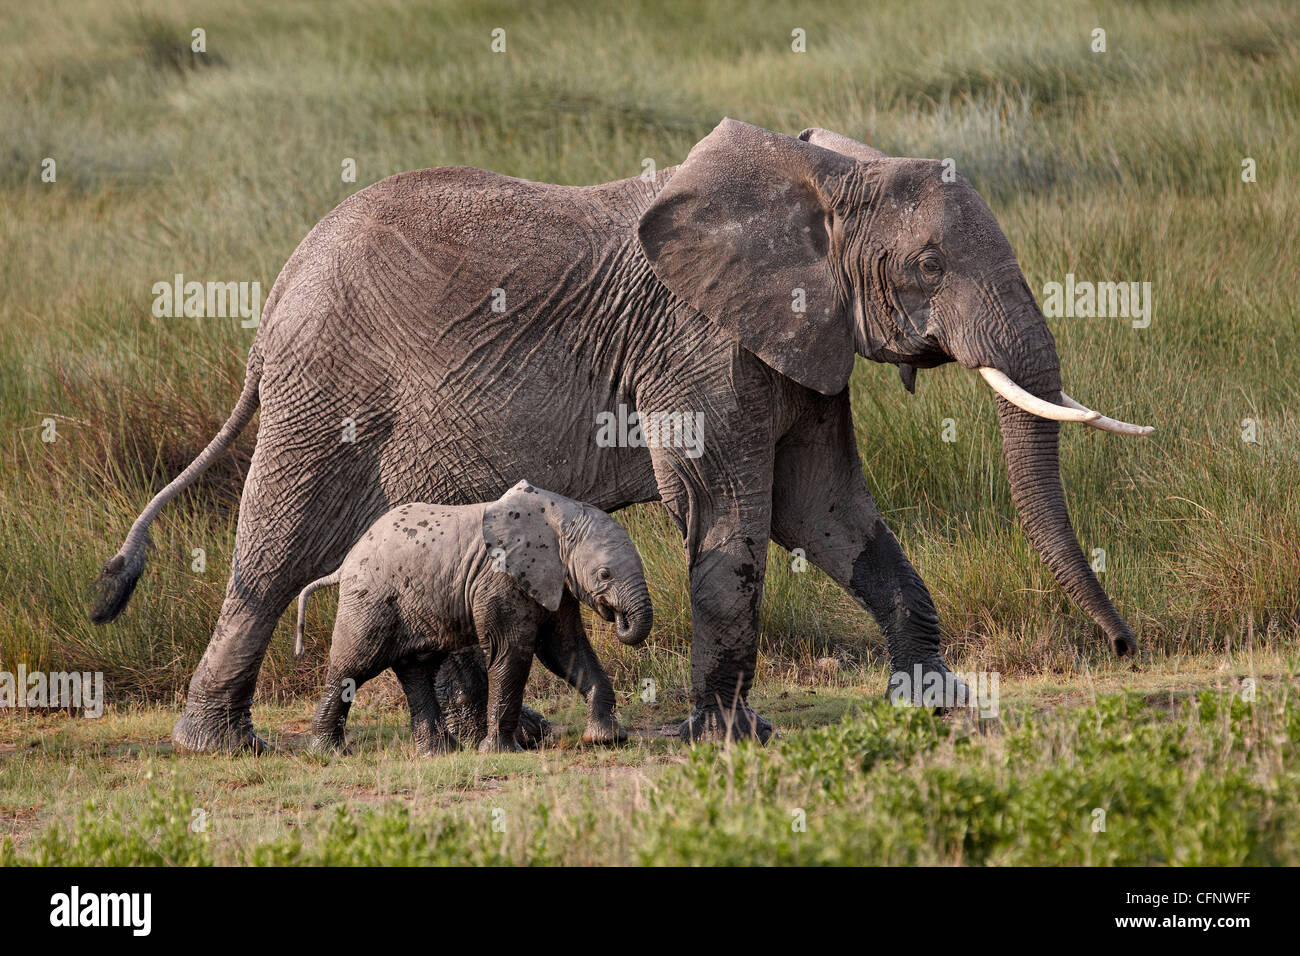 African elephant (Loxodonta africana) mother and baby, Serengeti National Park, Tanzania, East Africa, Africa - Stock Image